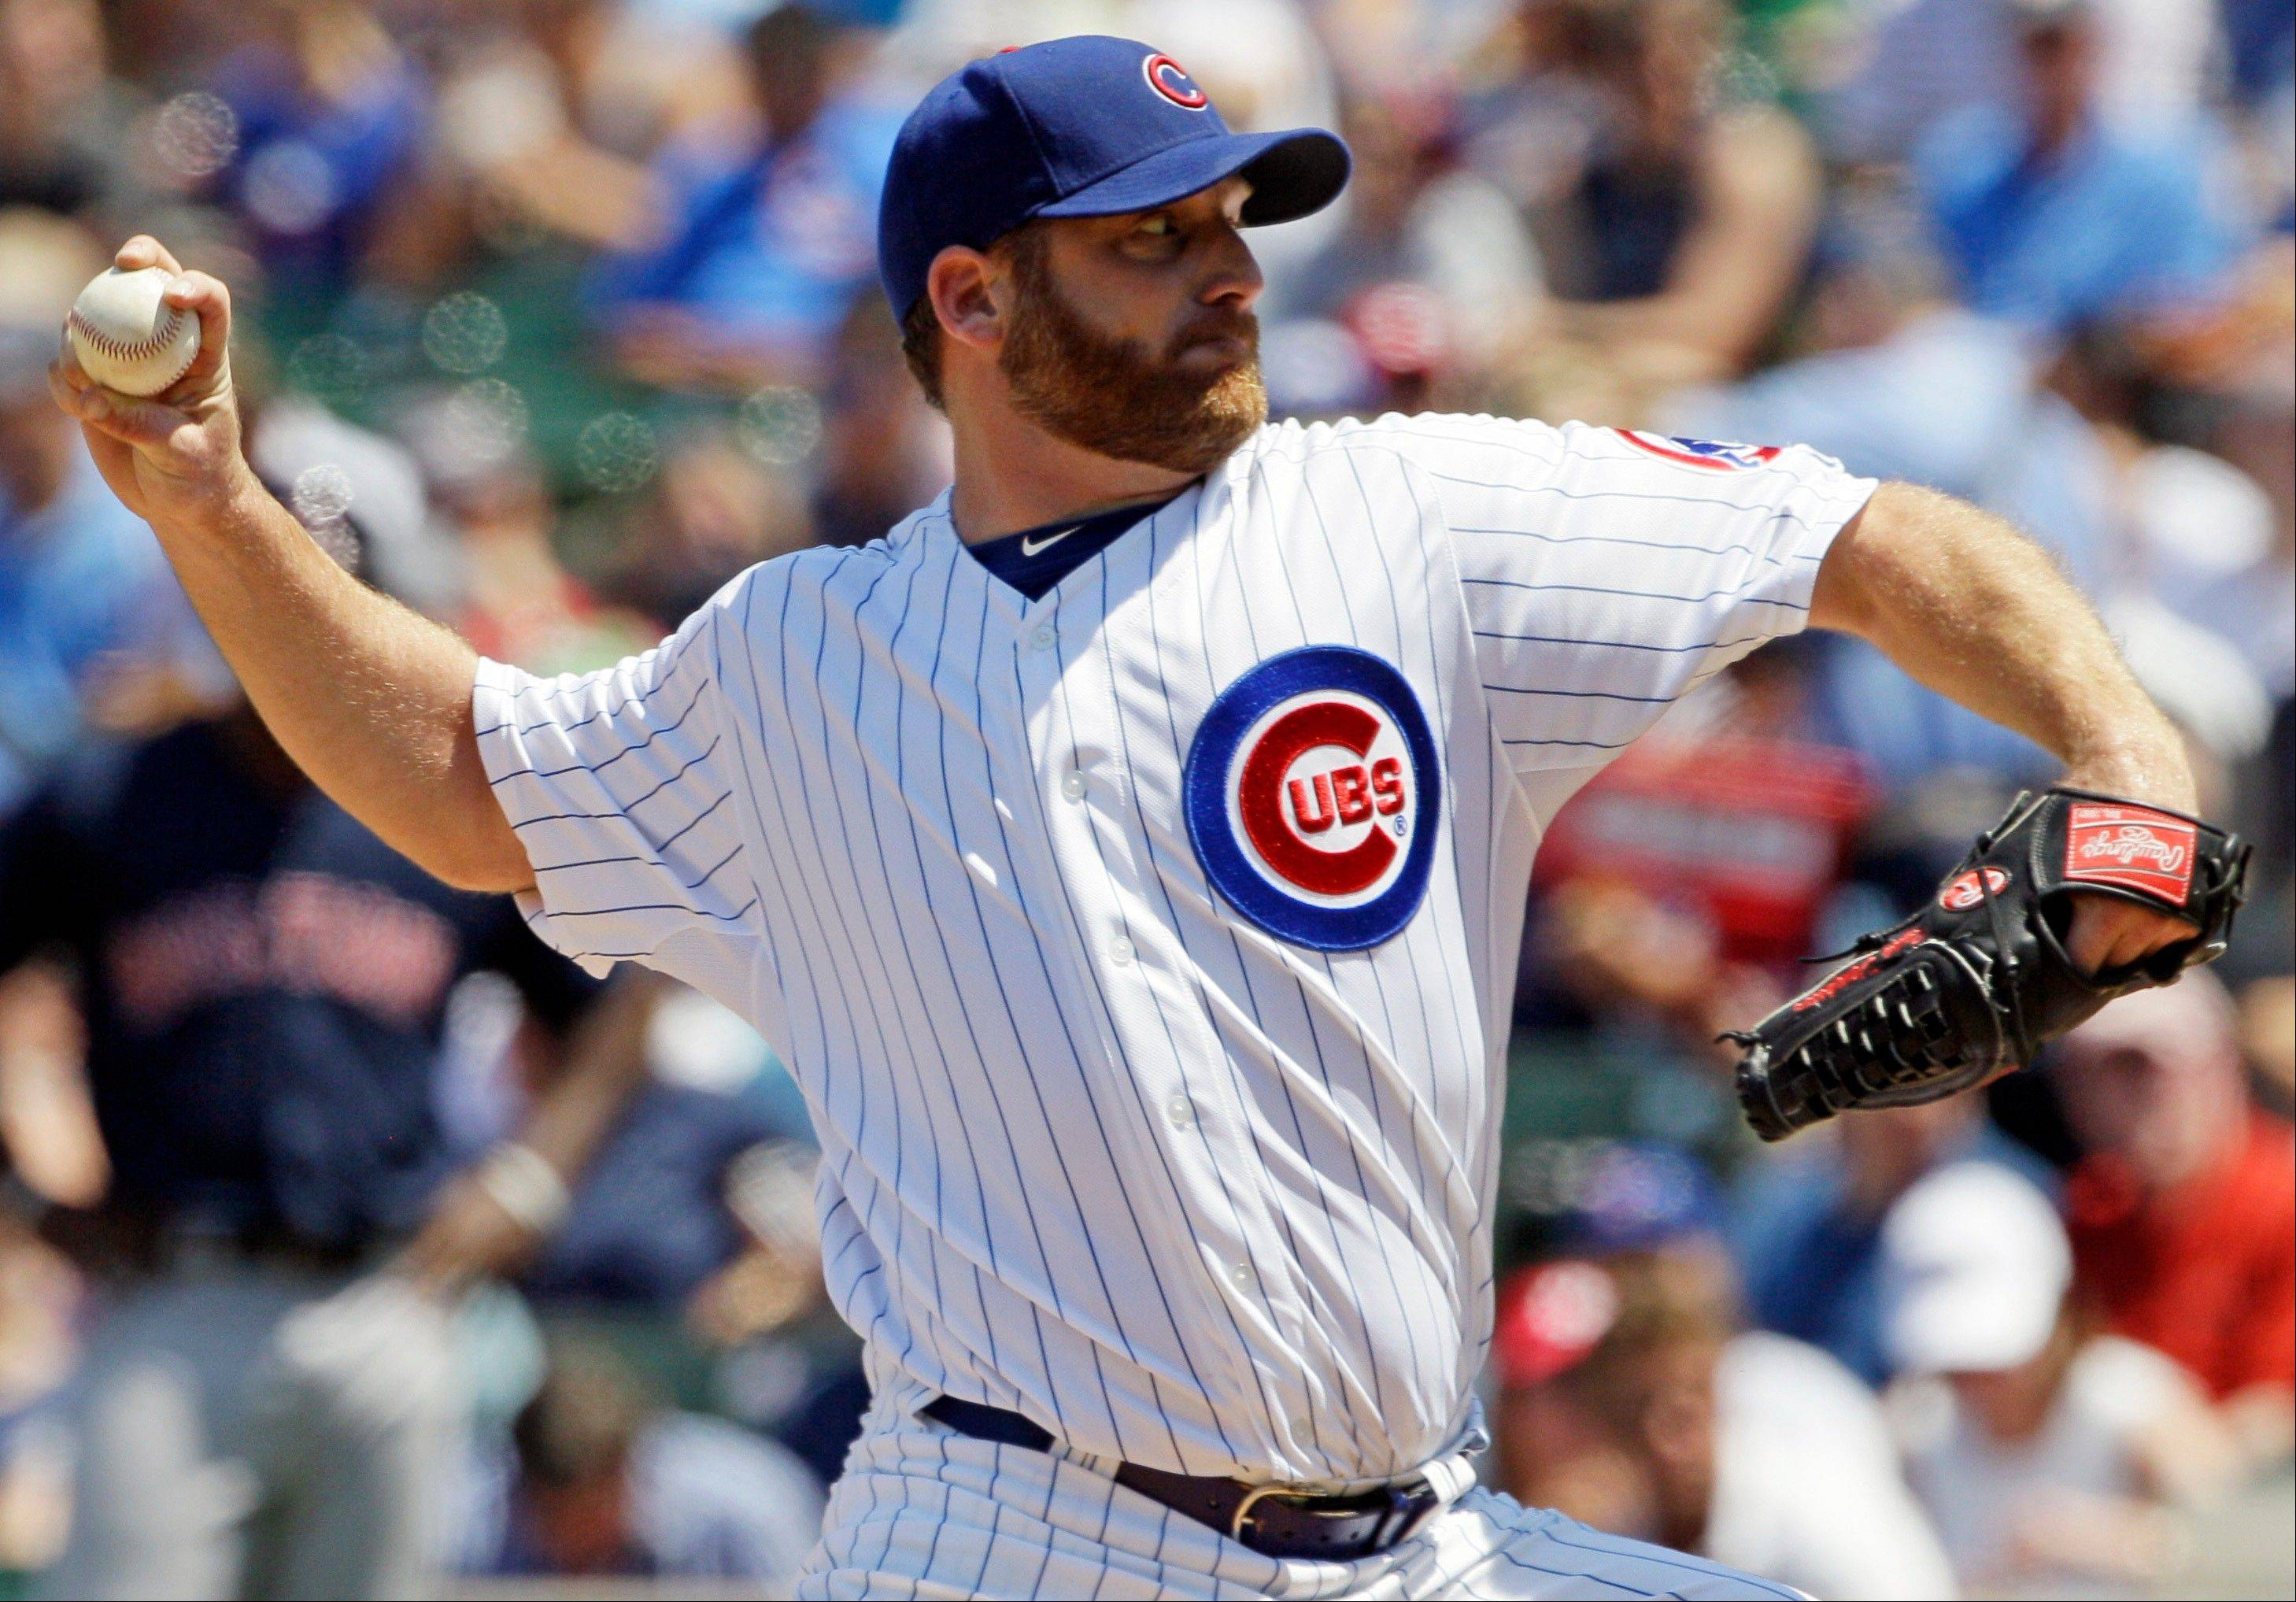 The Cubs traded starter Ryan Dempster to the Texas Rangers.